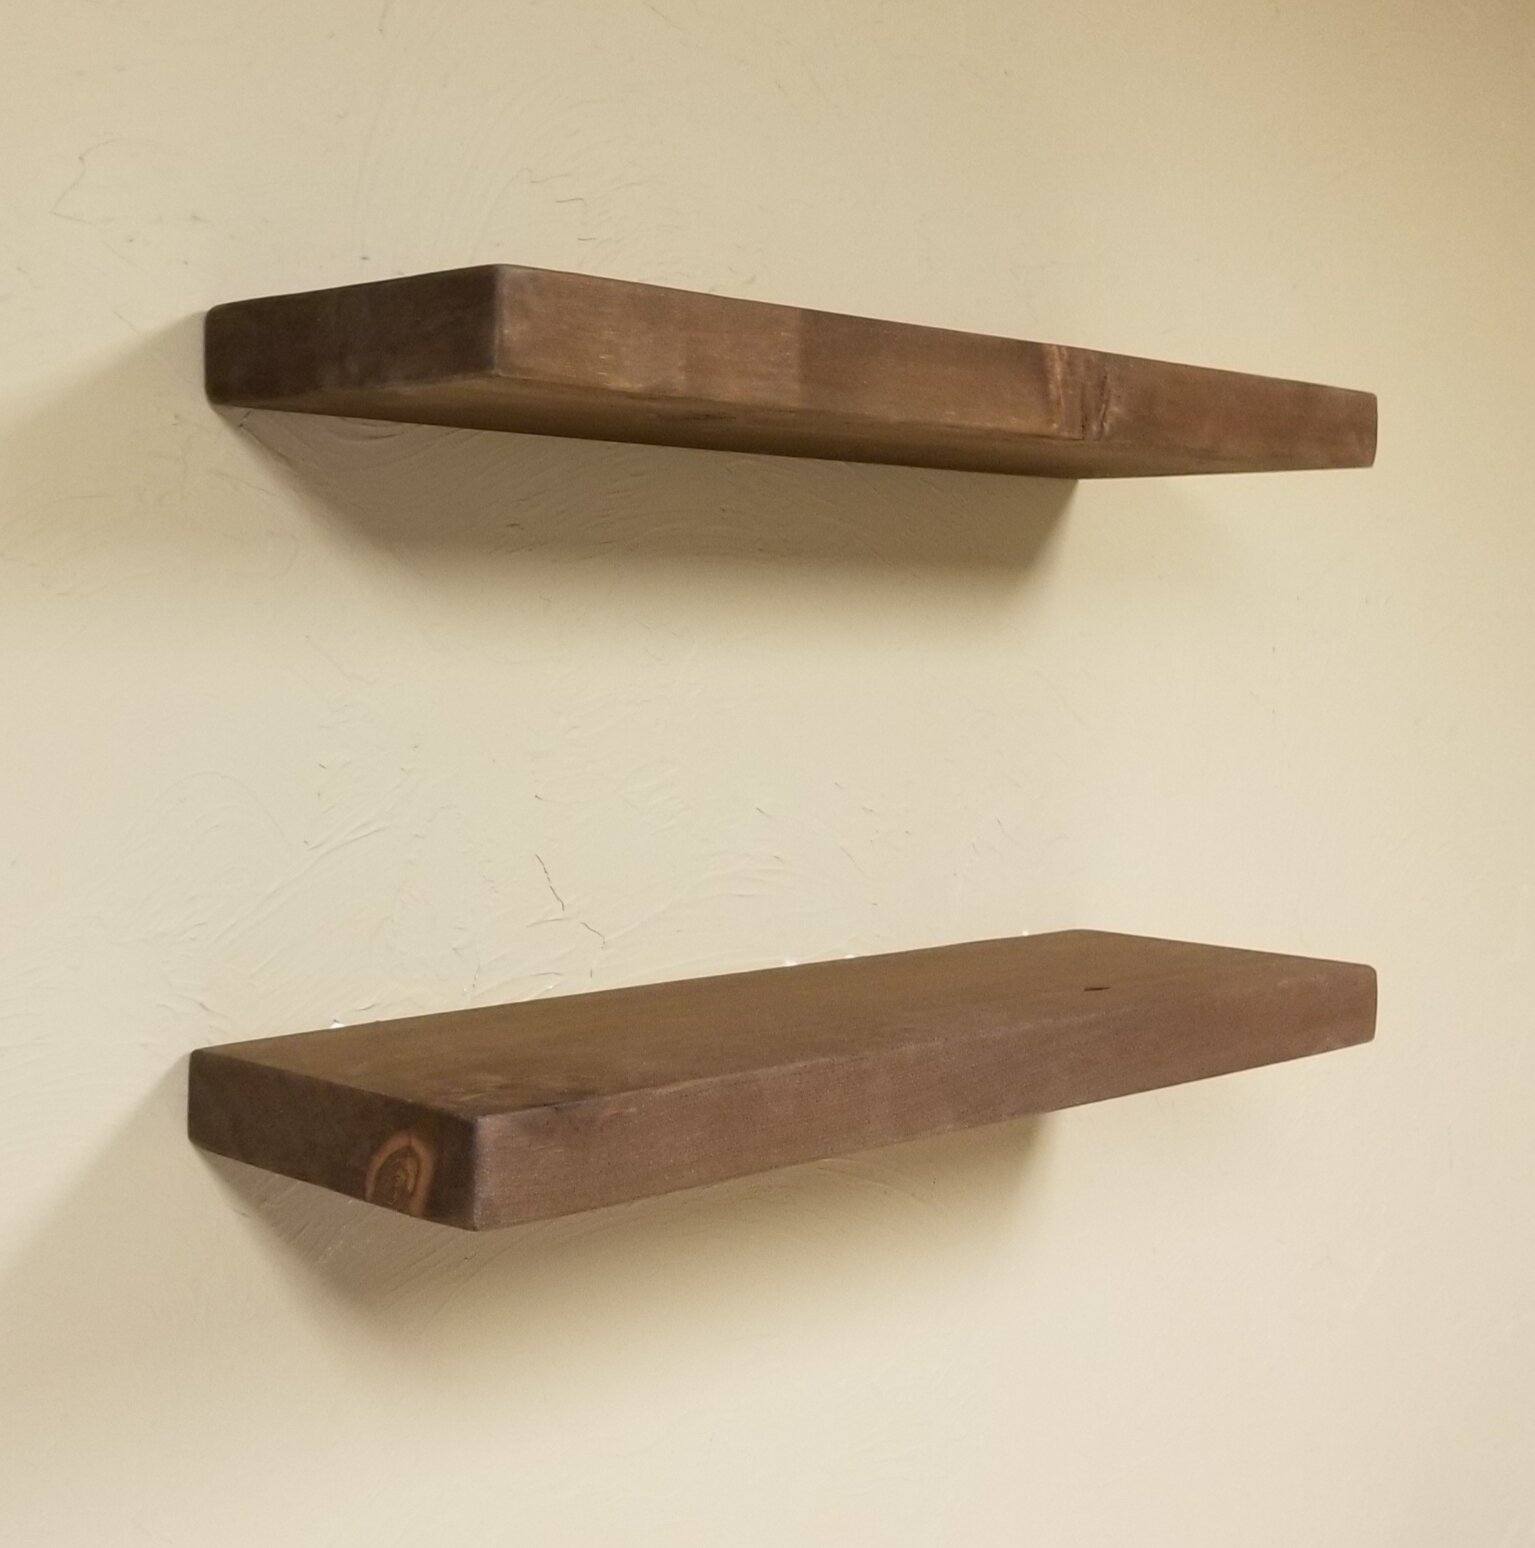 Tatianna Wood Floating Shelf